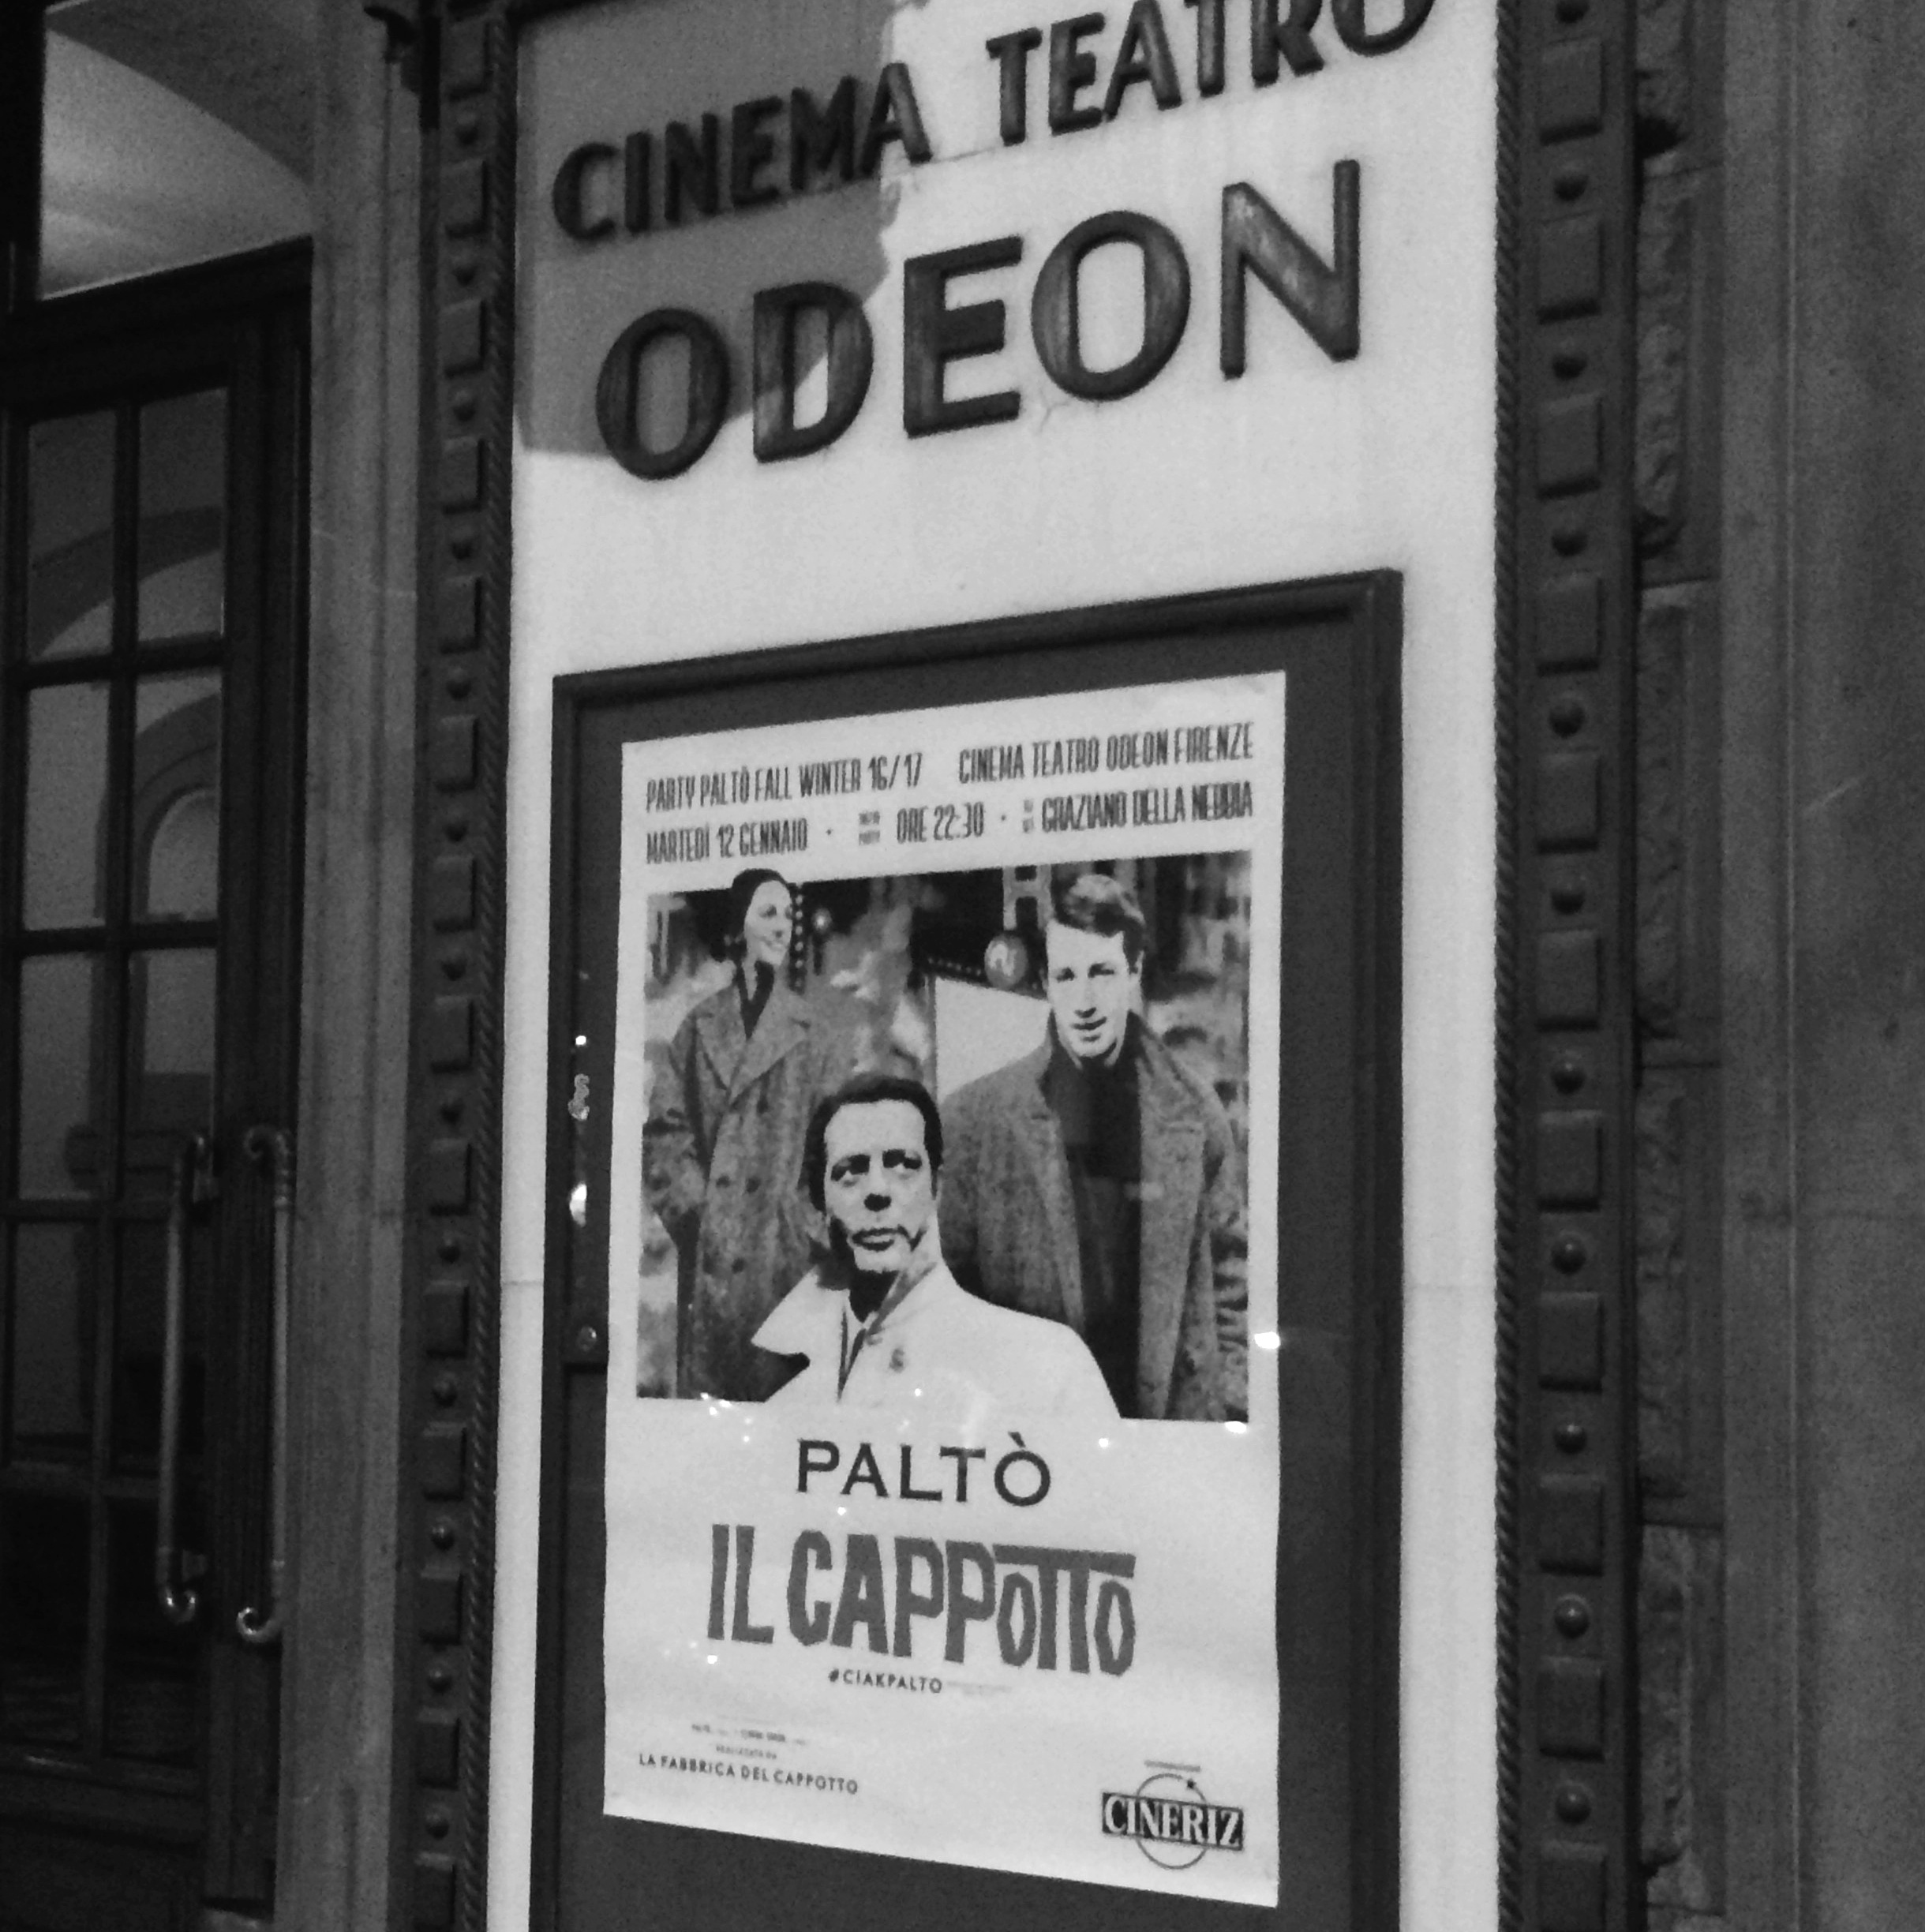 paltò il cappotto cinema teatro odeon firenze